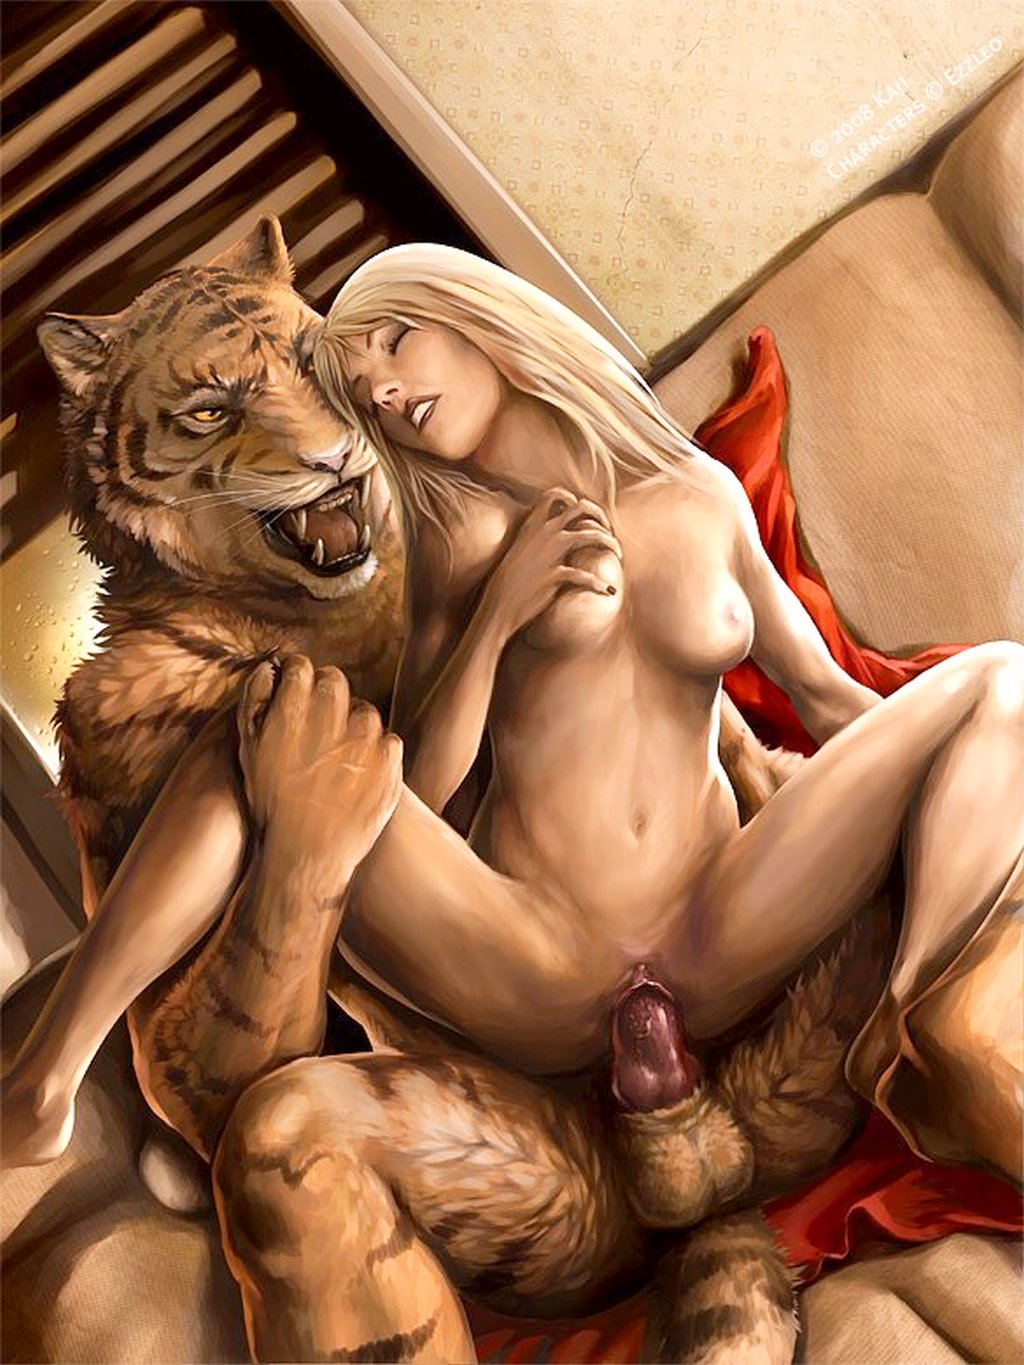 Tiger fucks girl naked download